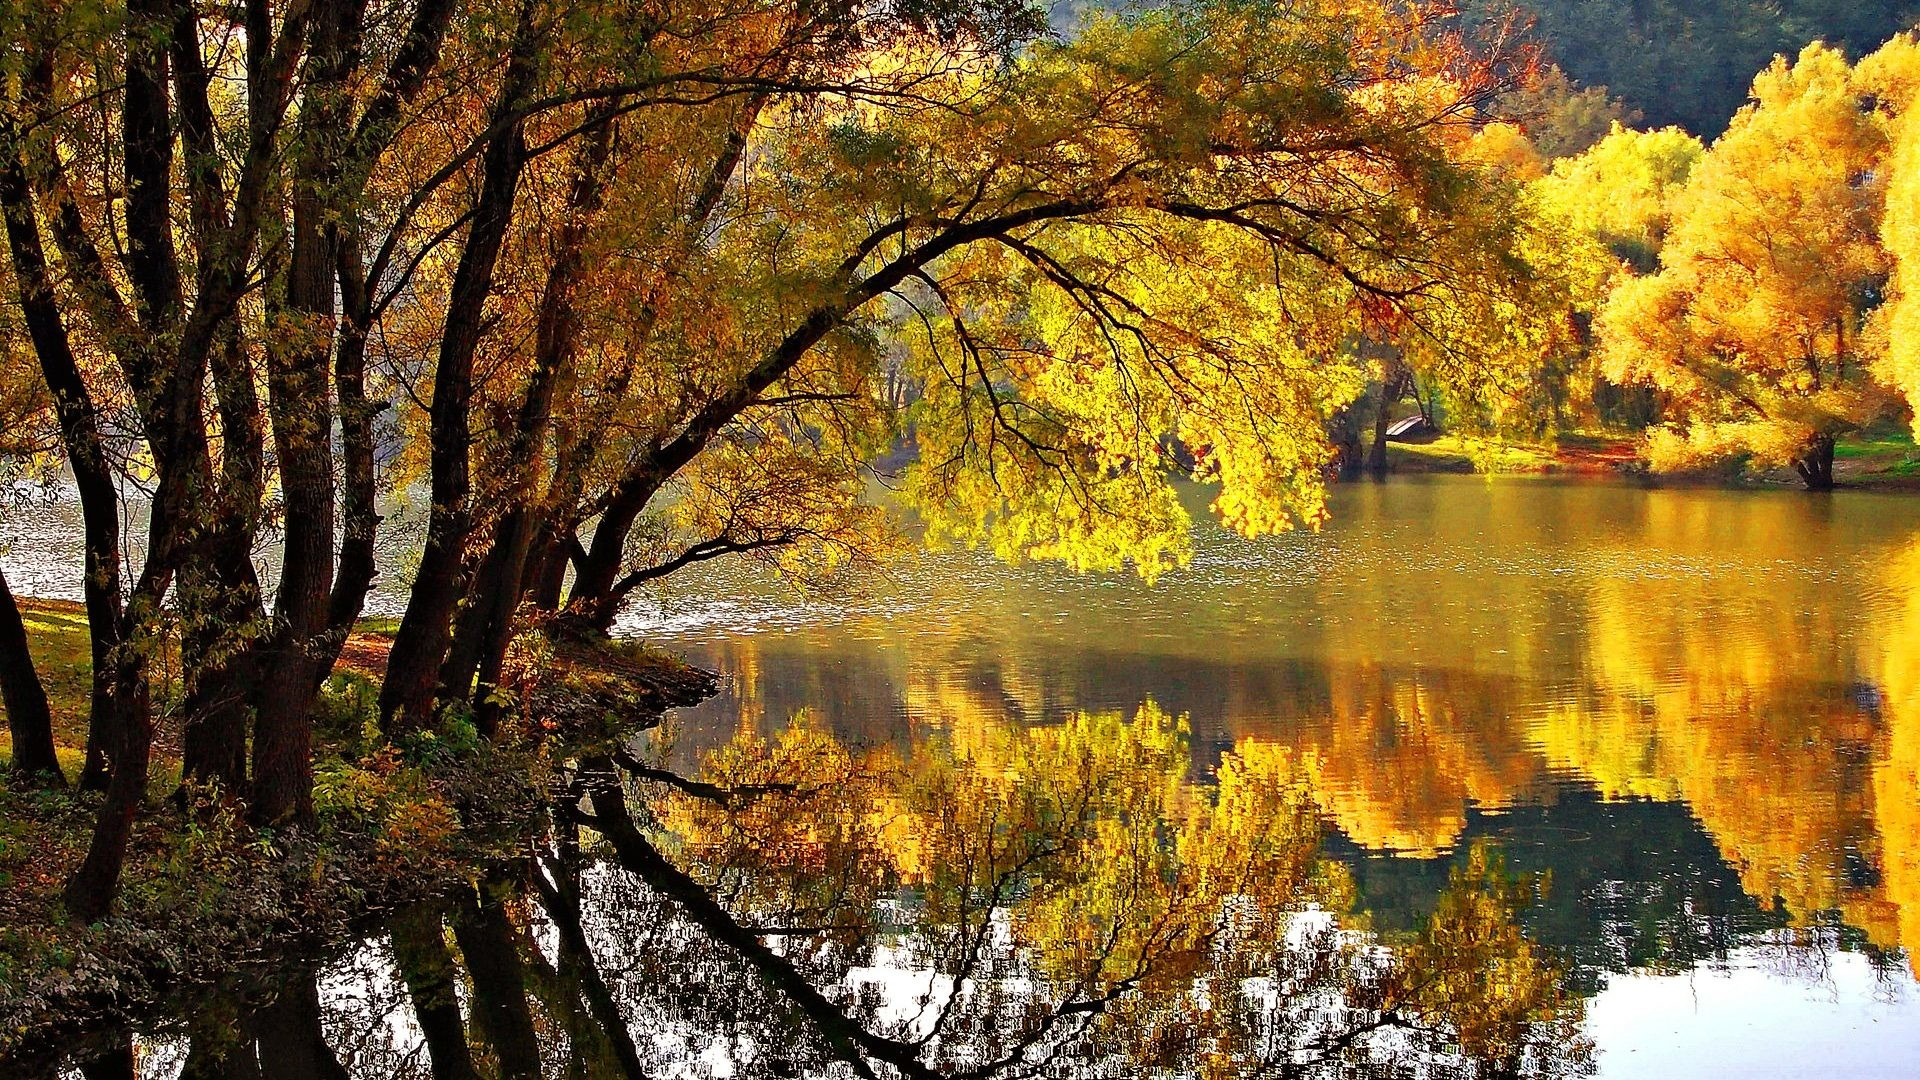 1920x1080 Leaves Tag - Park Golden Foliage Lovely Reflections Shore Pond Water Nature  Yellow Branches Silence Calmness